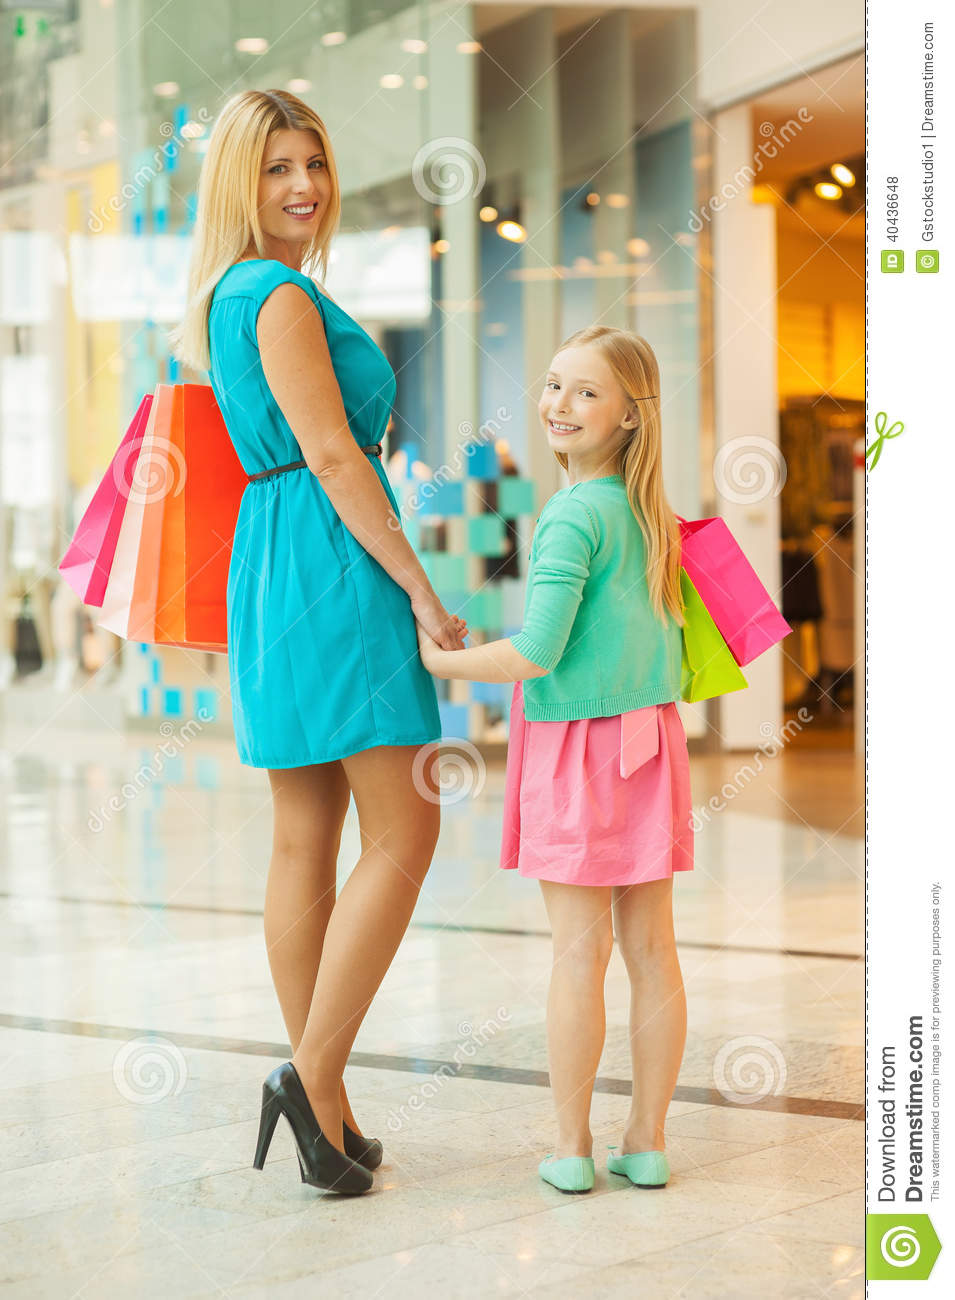 shopping mall and mother Download 1,630 mother daughter shopping mall stock photos for free or amazingly low rates new users enjoy 60% off 76,823,336 stock photos online.